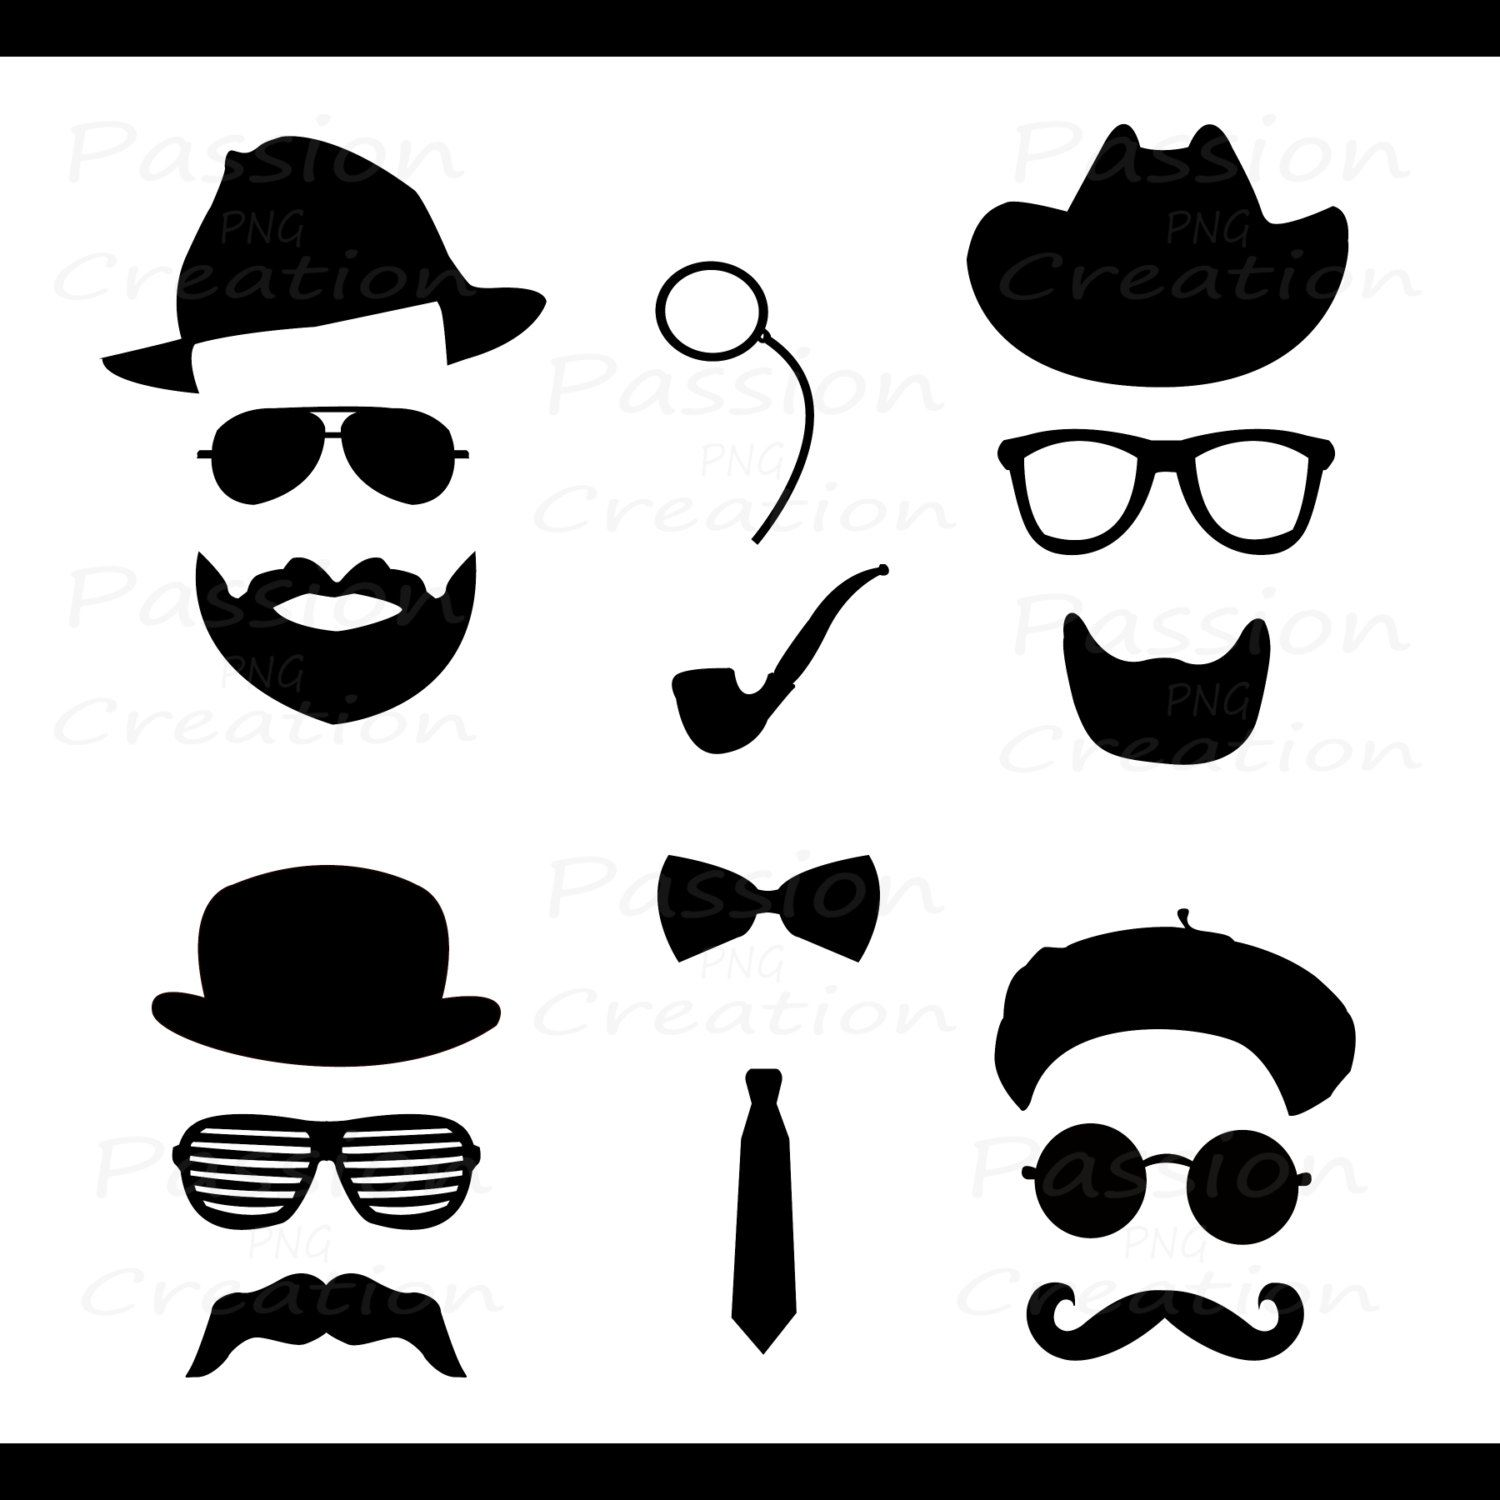 Mustache clipart eyewear. Digital silhouette hat glasses